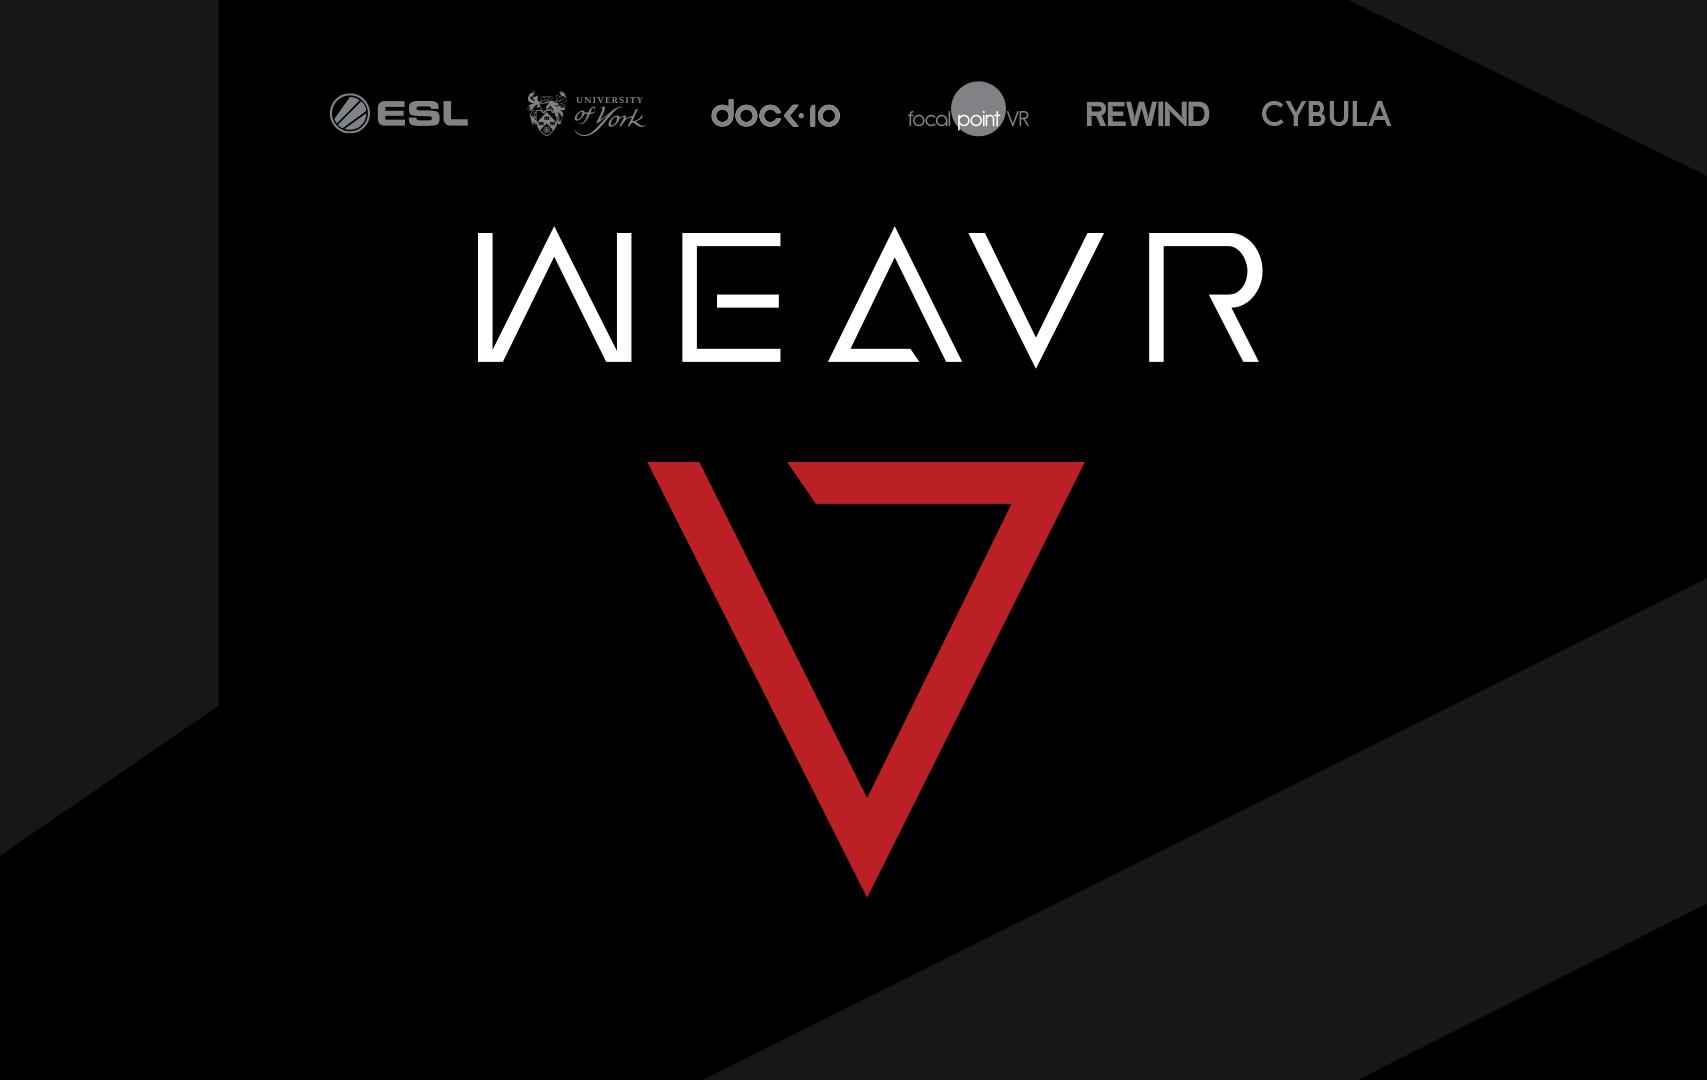 ESL x WEAVR LOGO - Manchester is the venue for ESI Spring as Weavr added to Winter Forum lineup